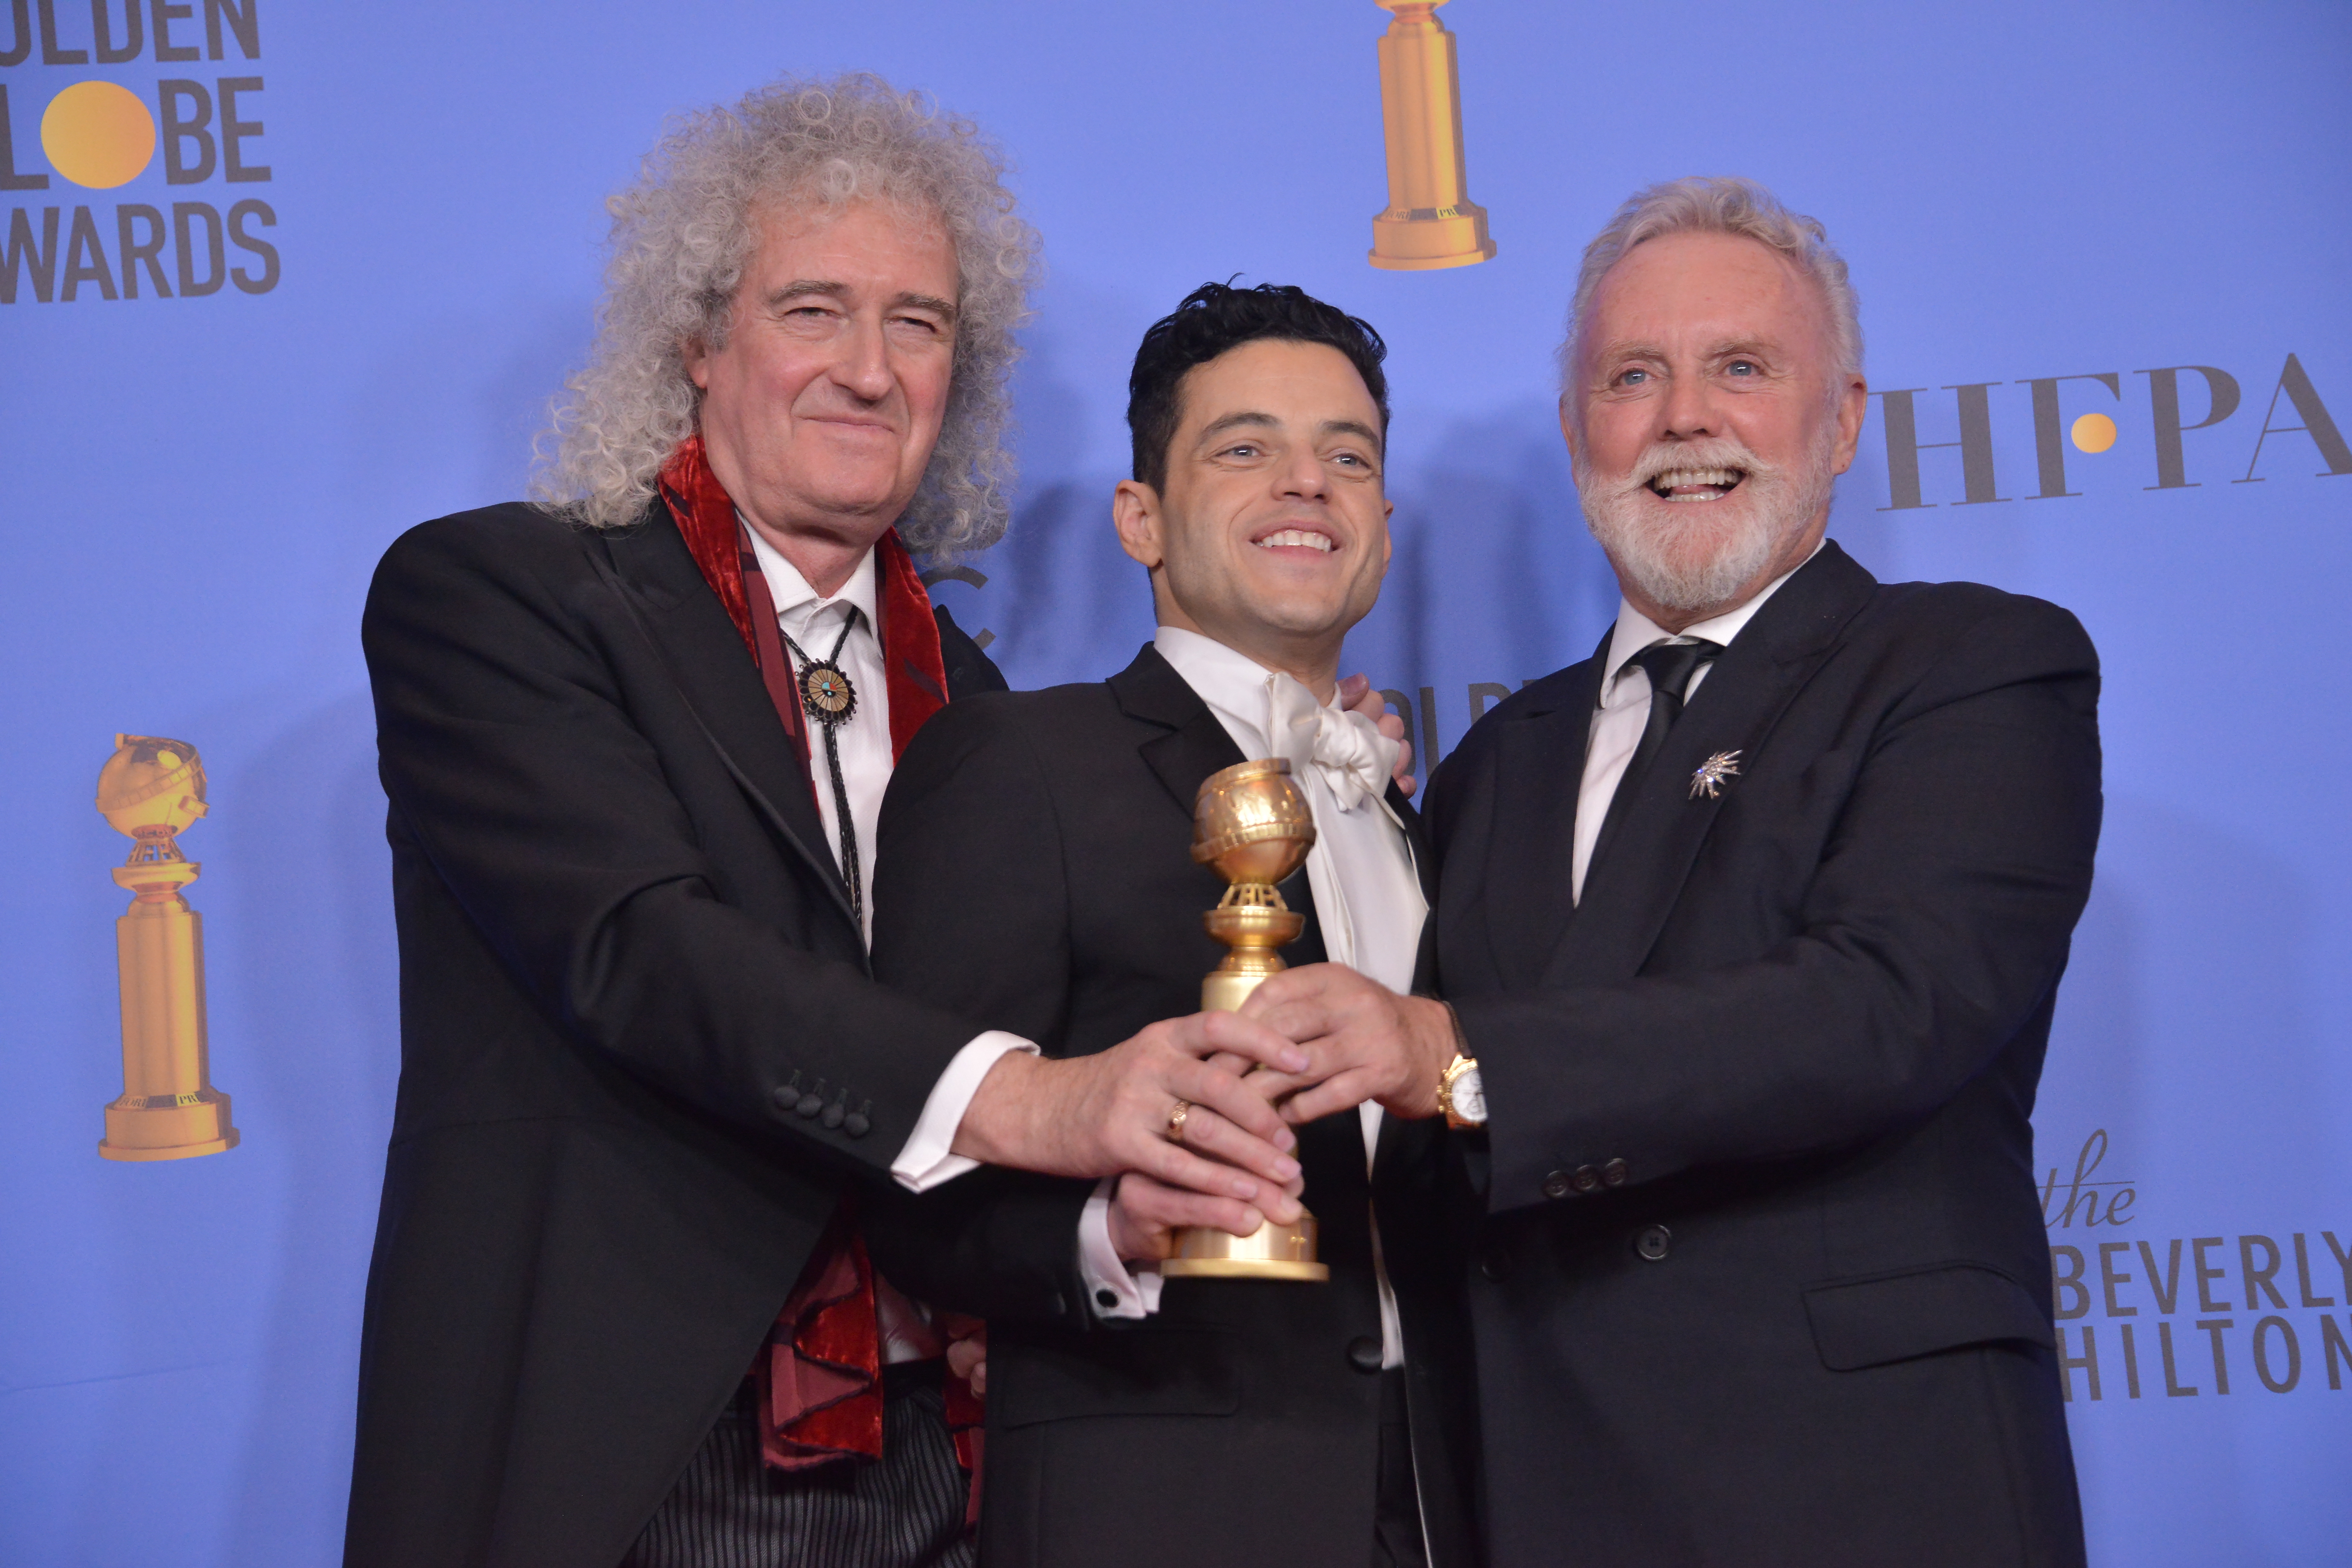 Roger Taylor and Brian May of Queen and Rami Malek at the Golden Globes. Credit: PA